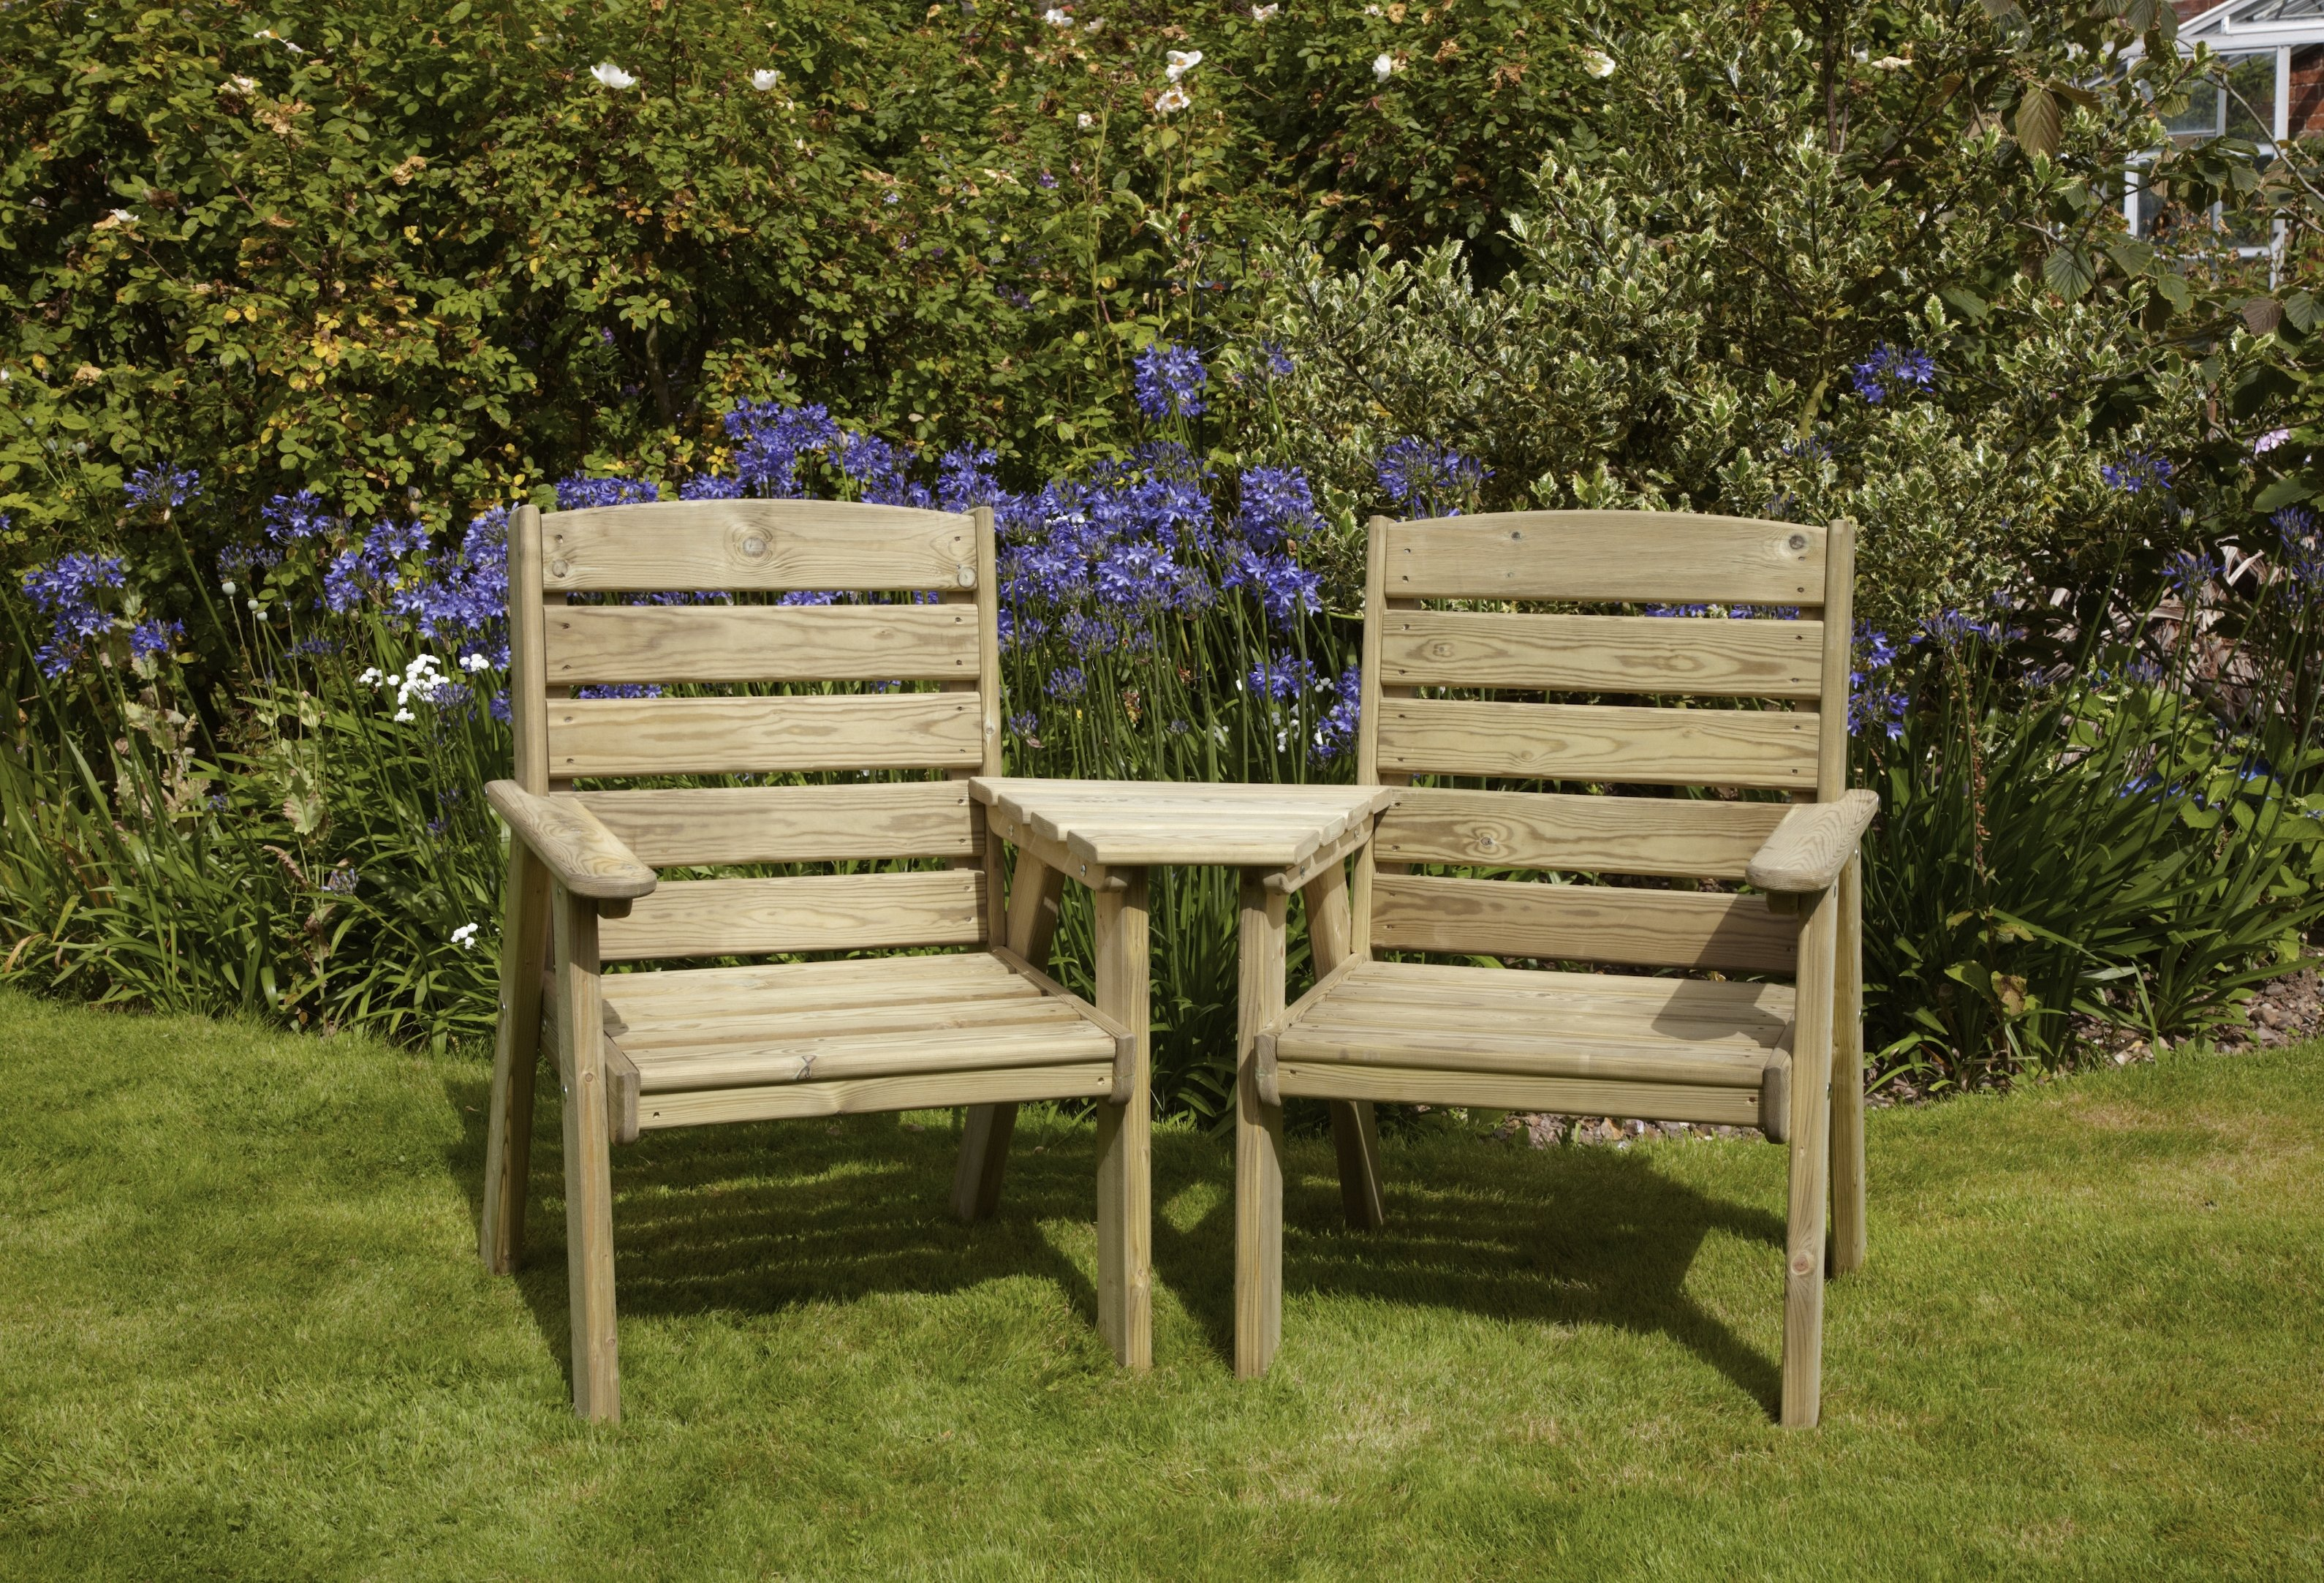 Anchor Fast Garden Furniture Simply Wood